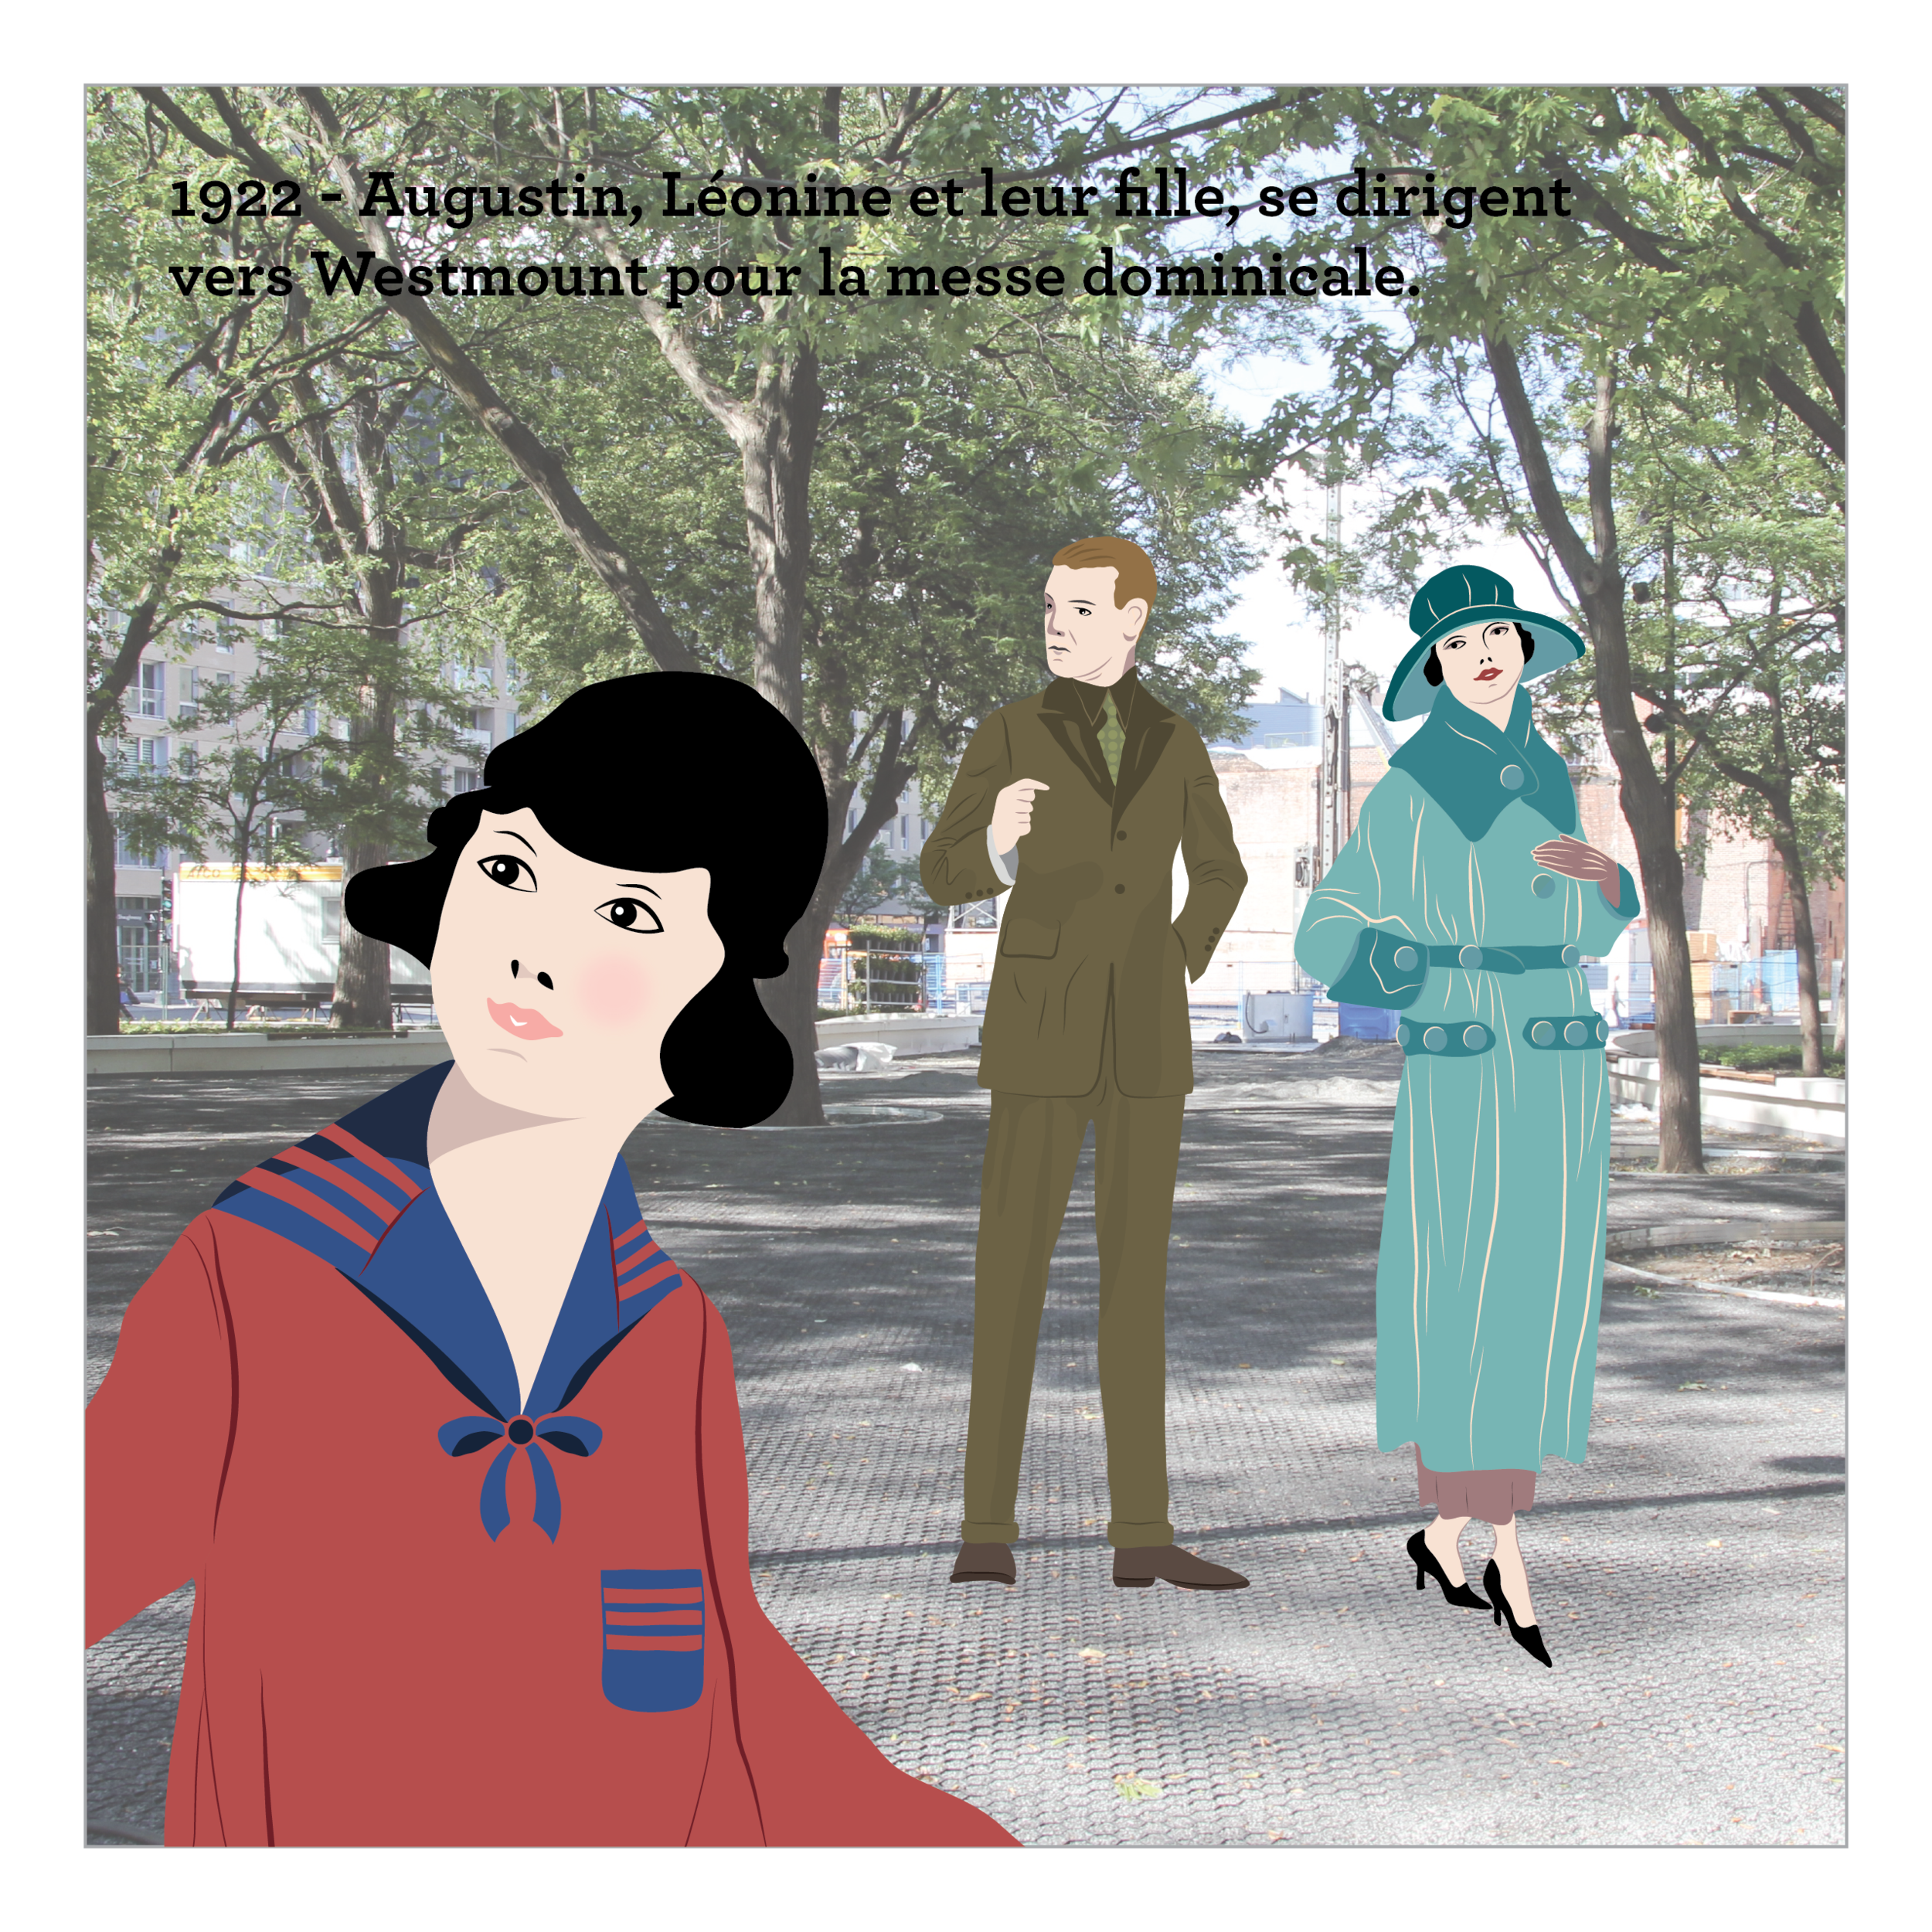 Cabot-defileStoryboardVueVisionneuse-030715-03.png